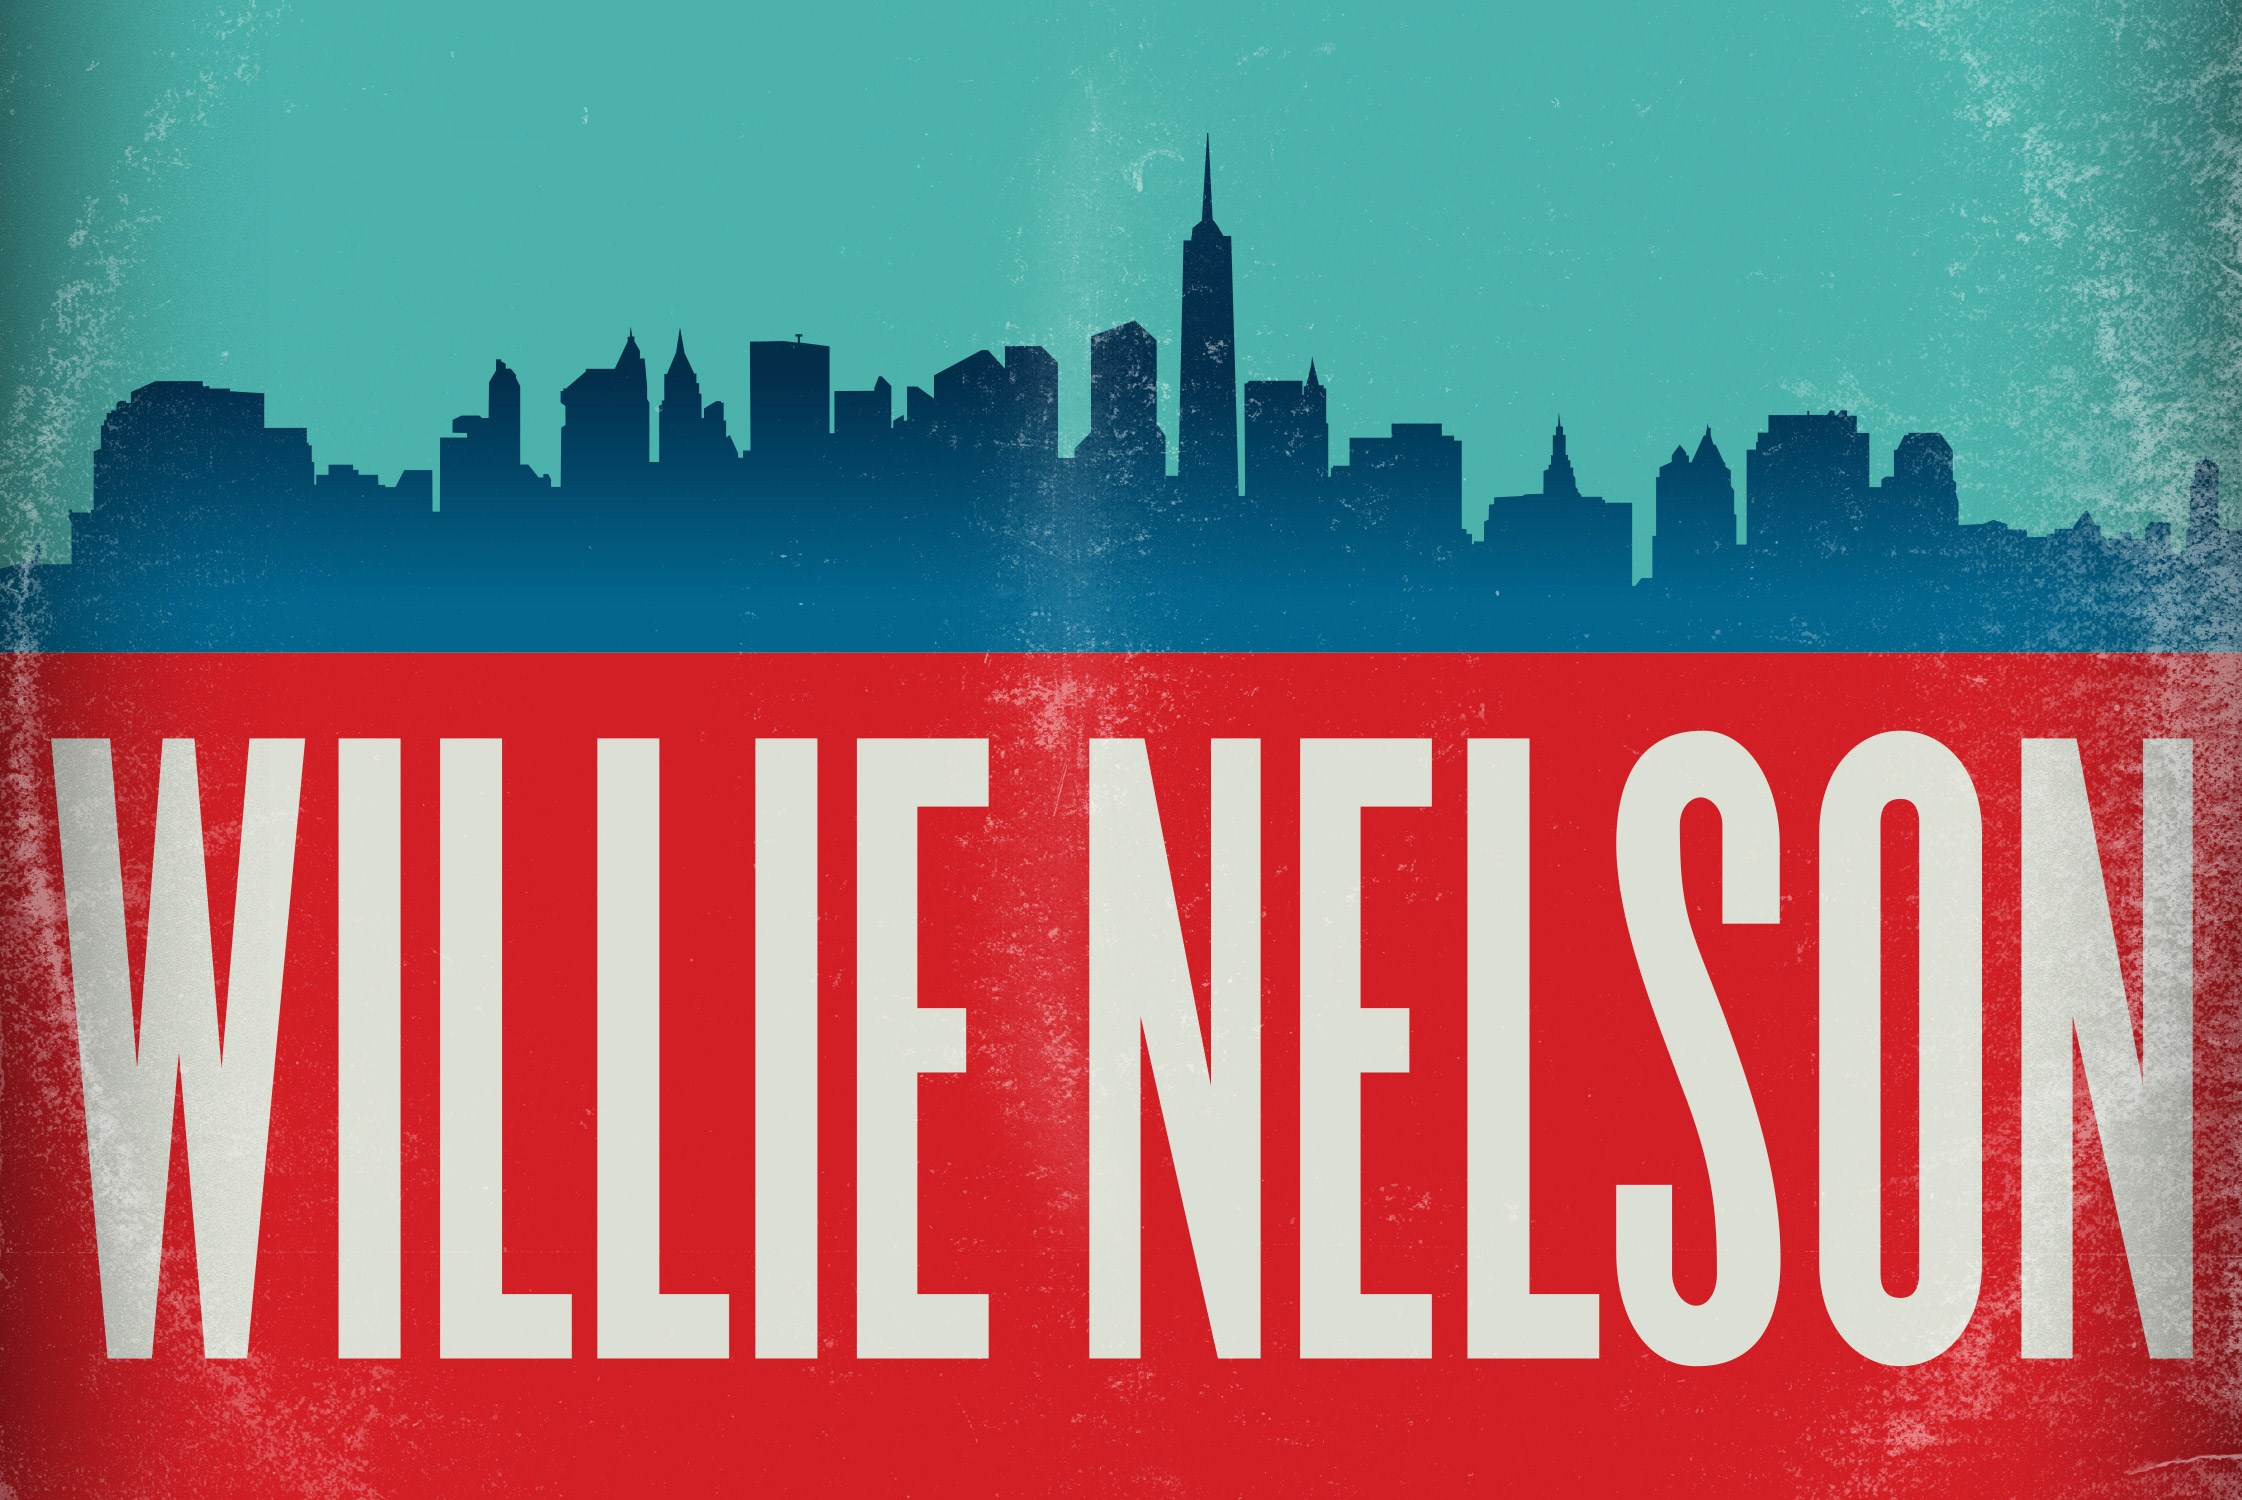 willie_nelson_thumbnail_2.jpg